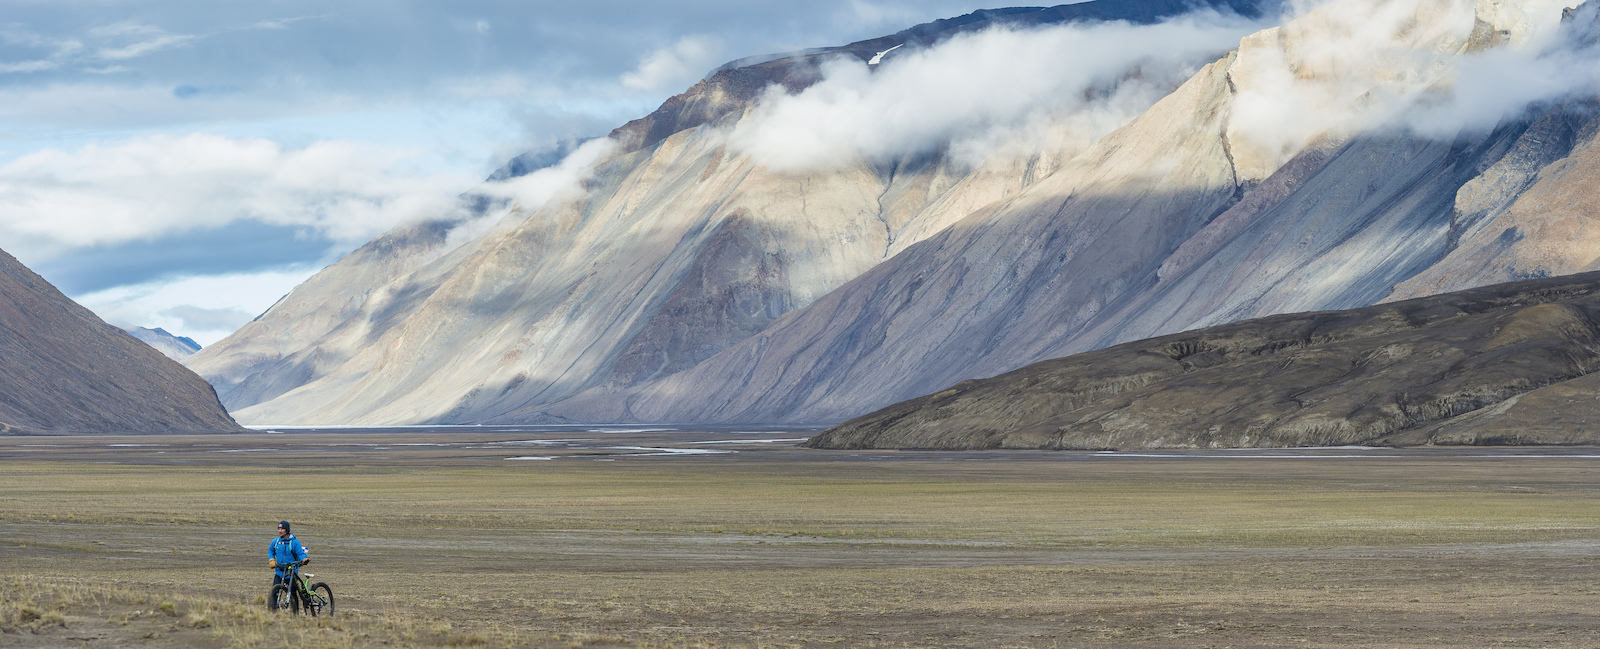 Incredible landscapes in all directions. Blake Jorgenson Red Bull Content Pool